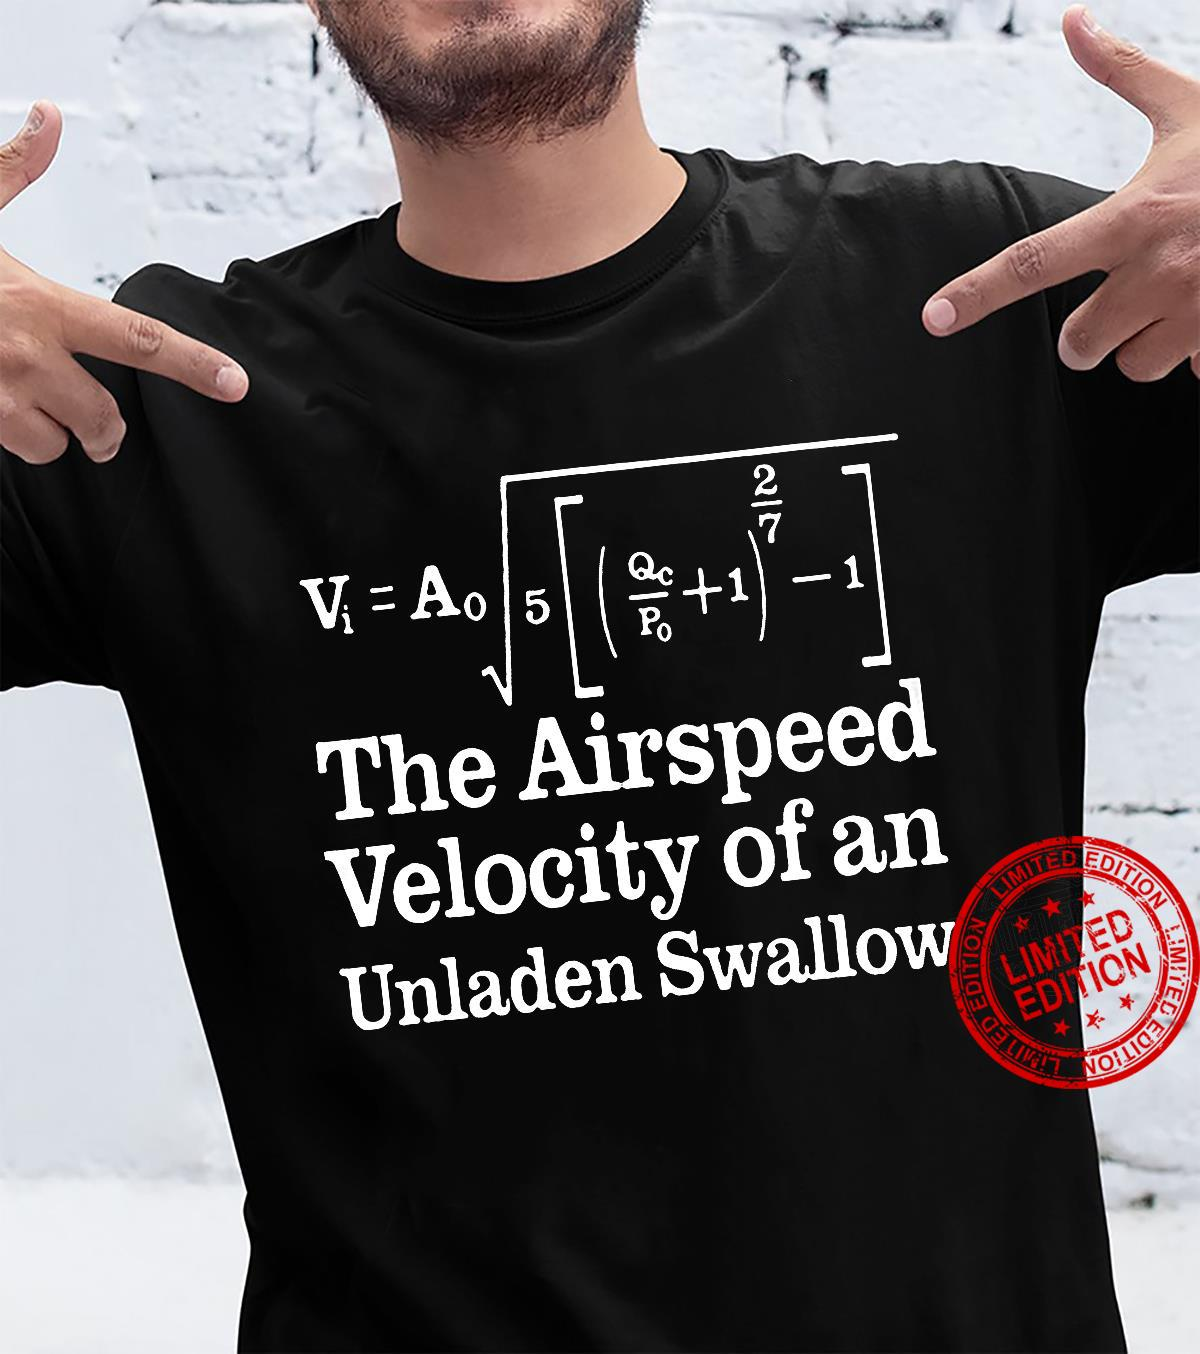 The airspeed velocity of an unladen swallow shirt